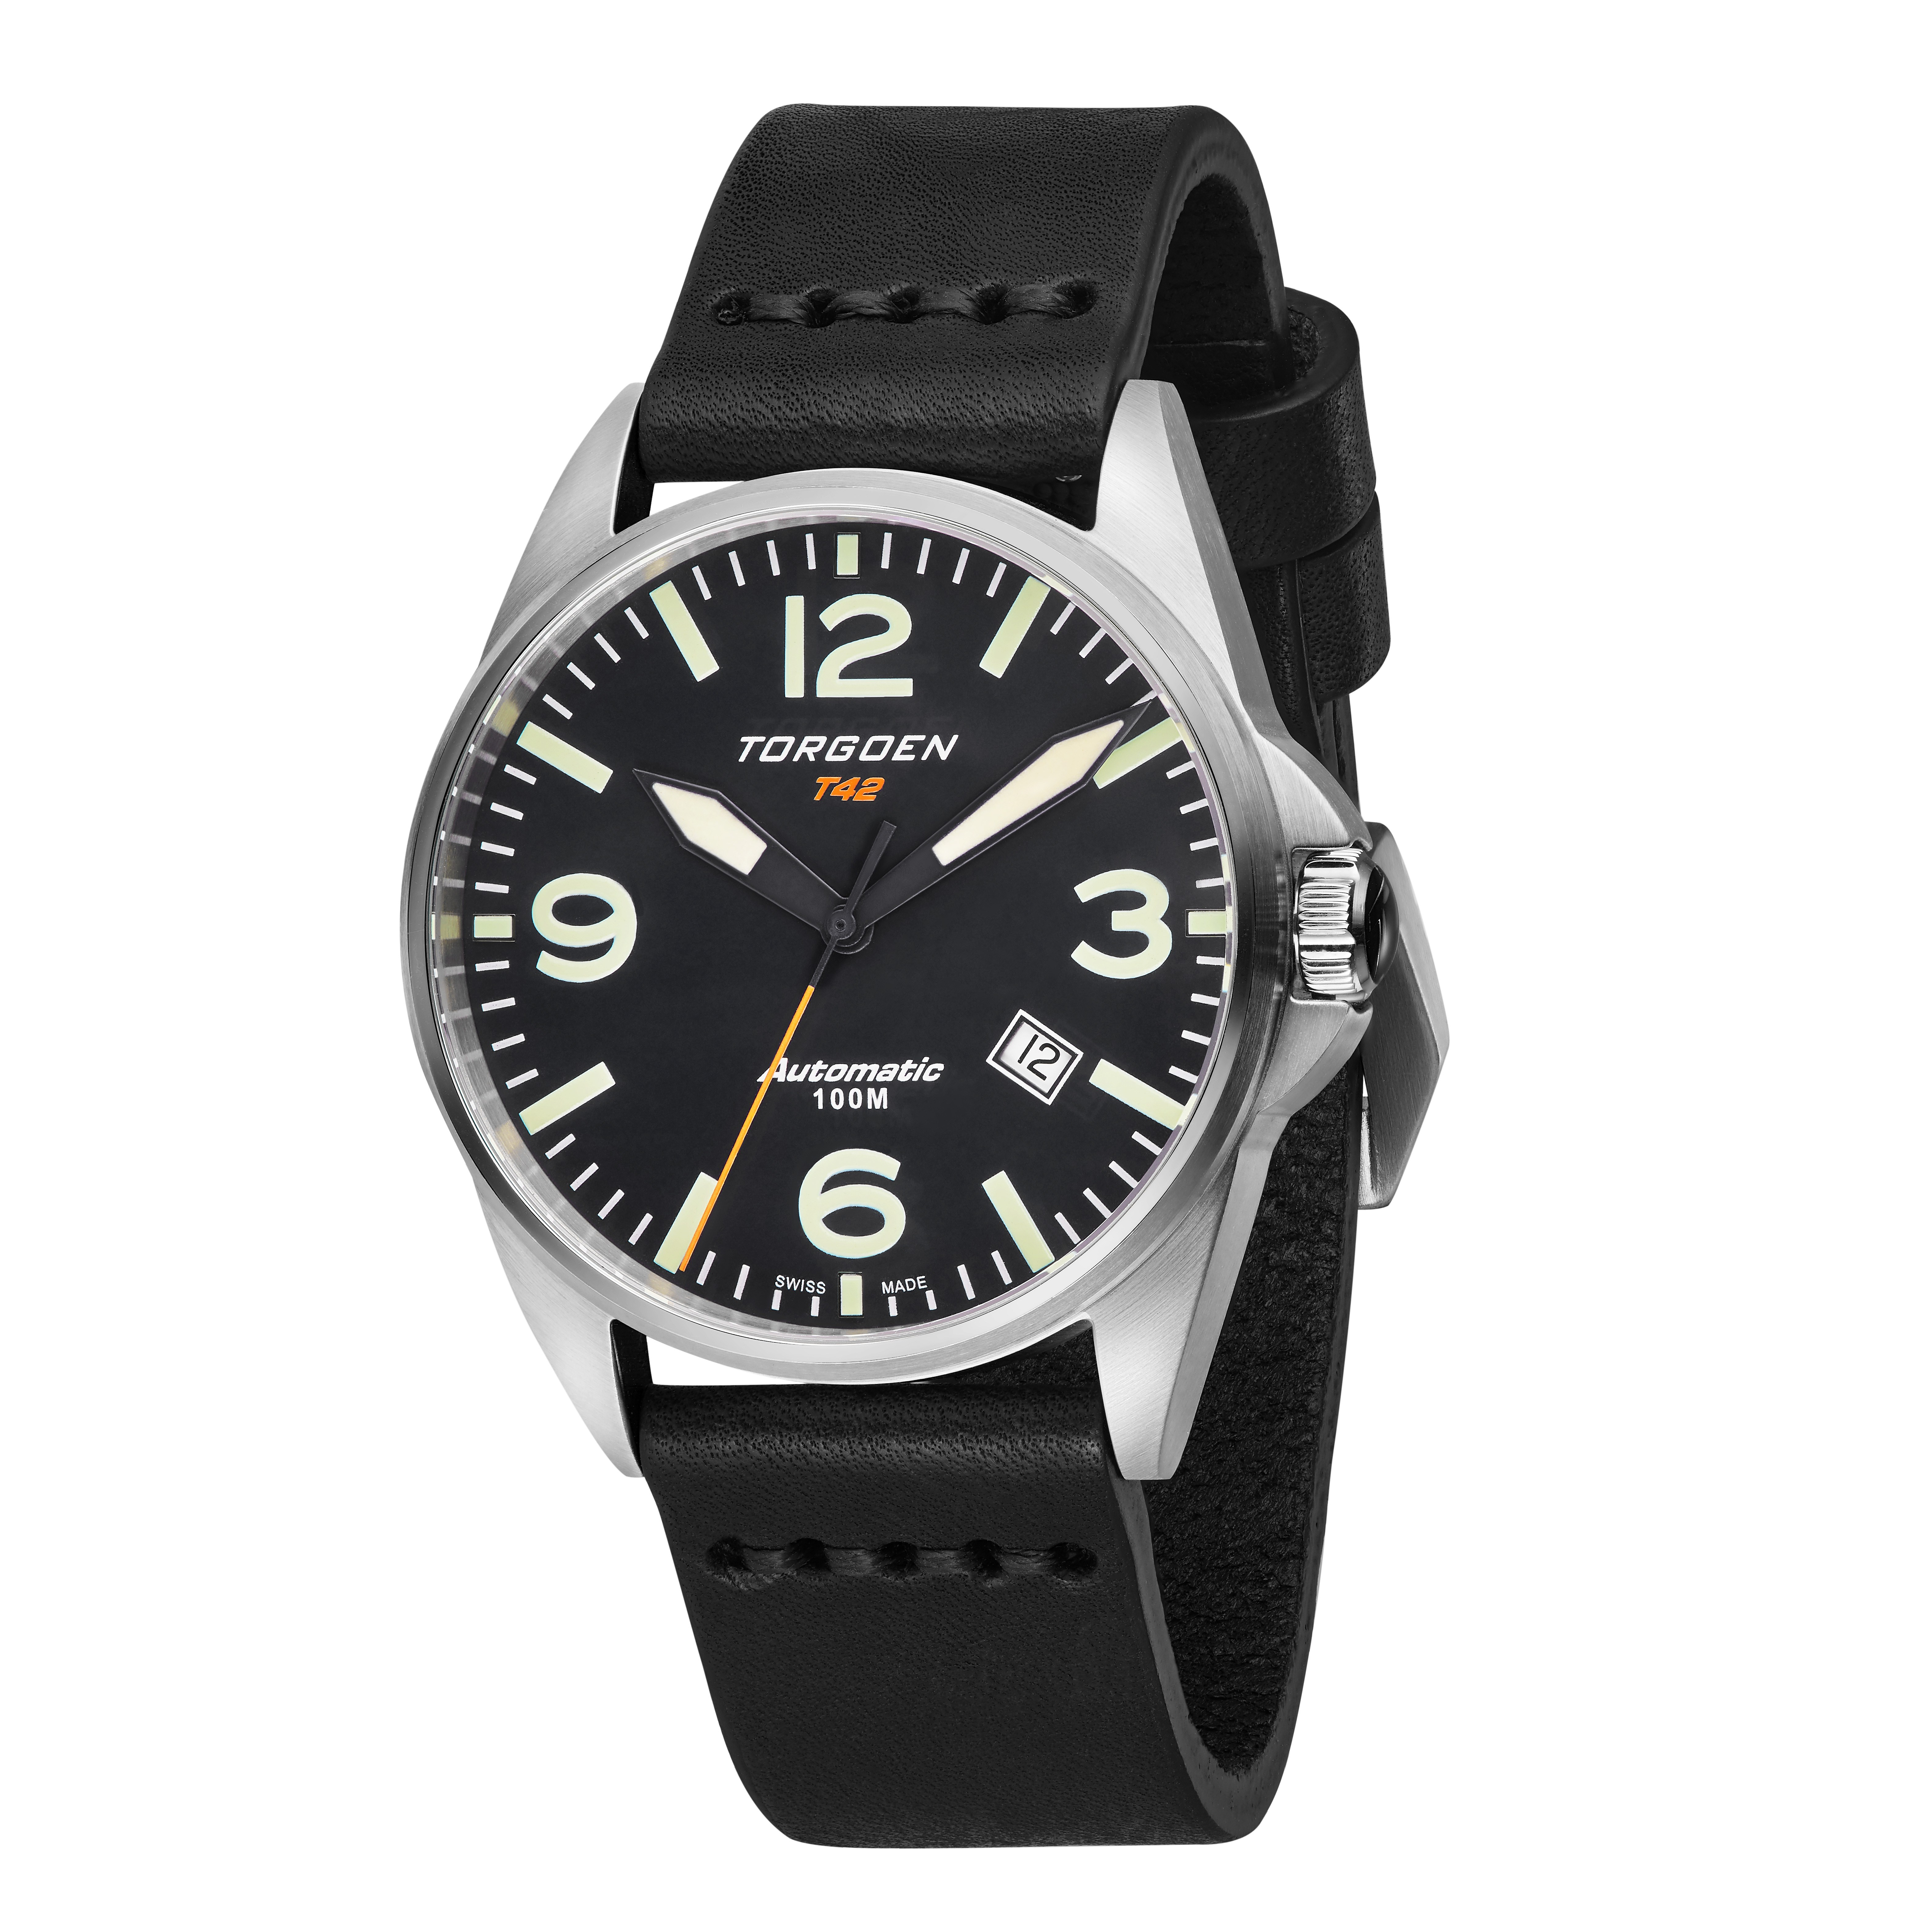 The limited-edition Torgoen Watches T42 release boasts a sapphire crystal with an anti-reflective coating and a genuine Italian leather strap with tone-on-tone stitching.